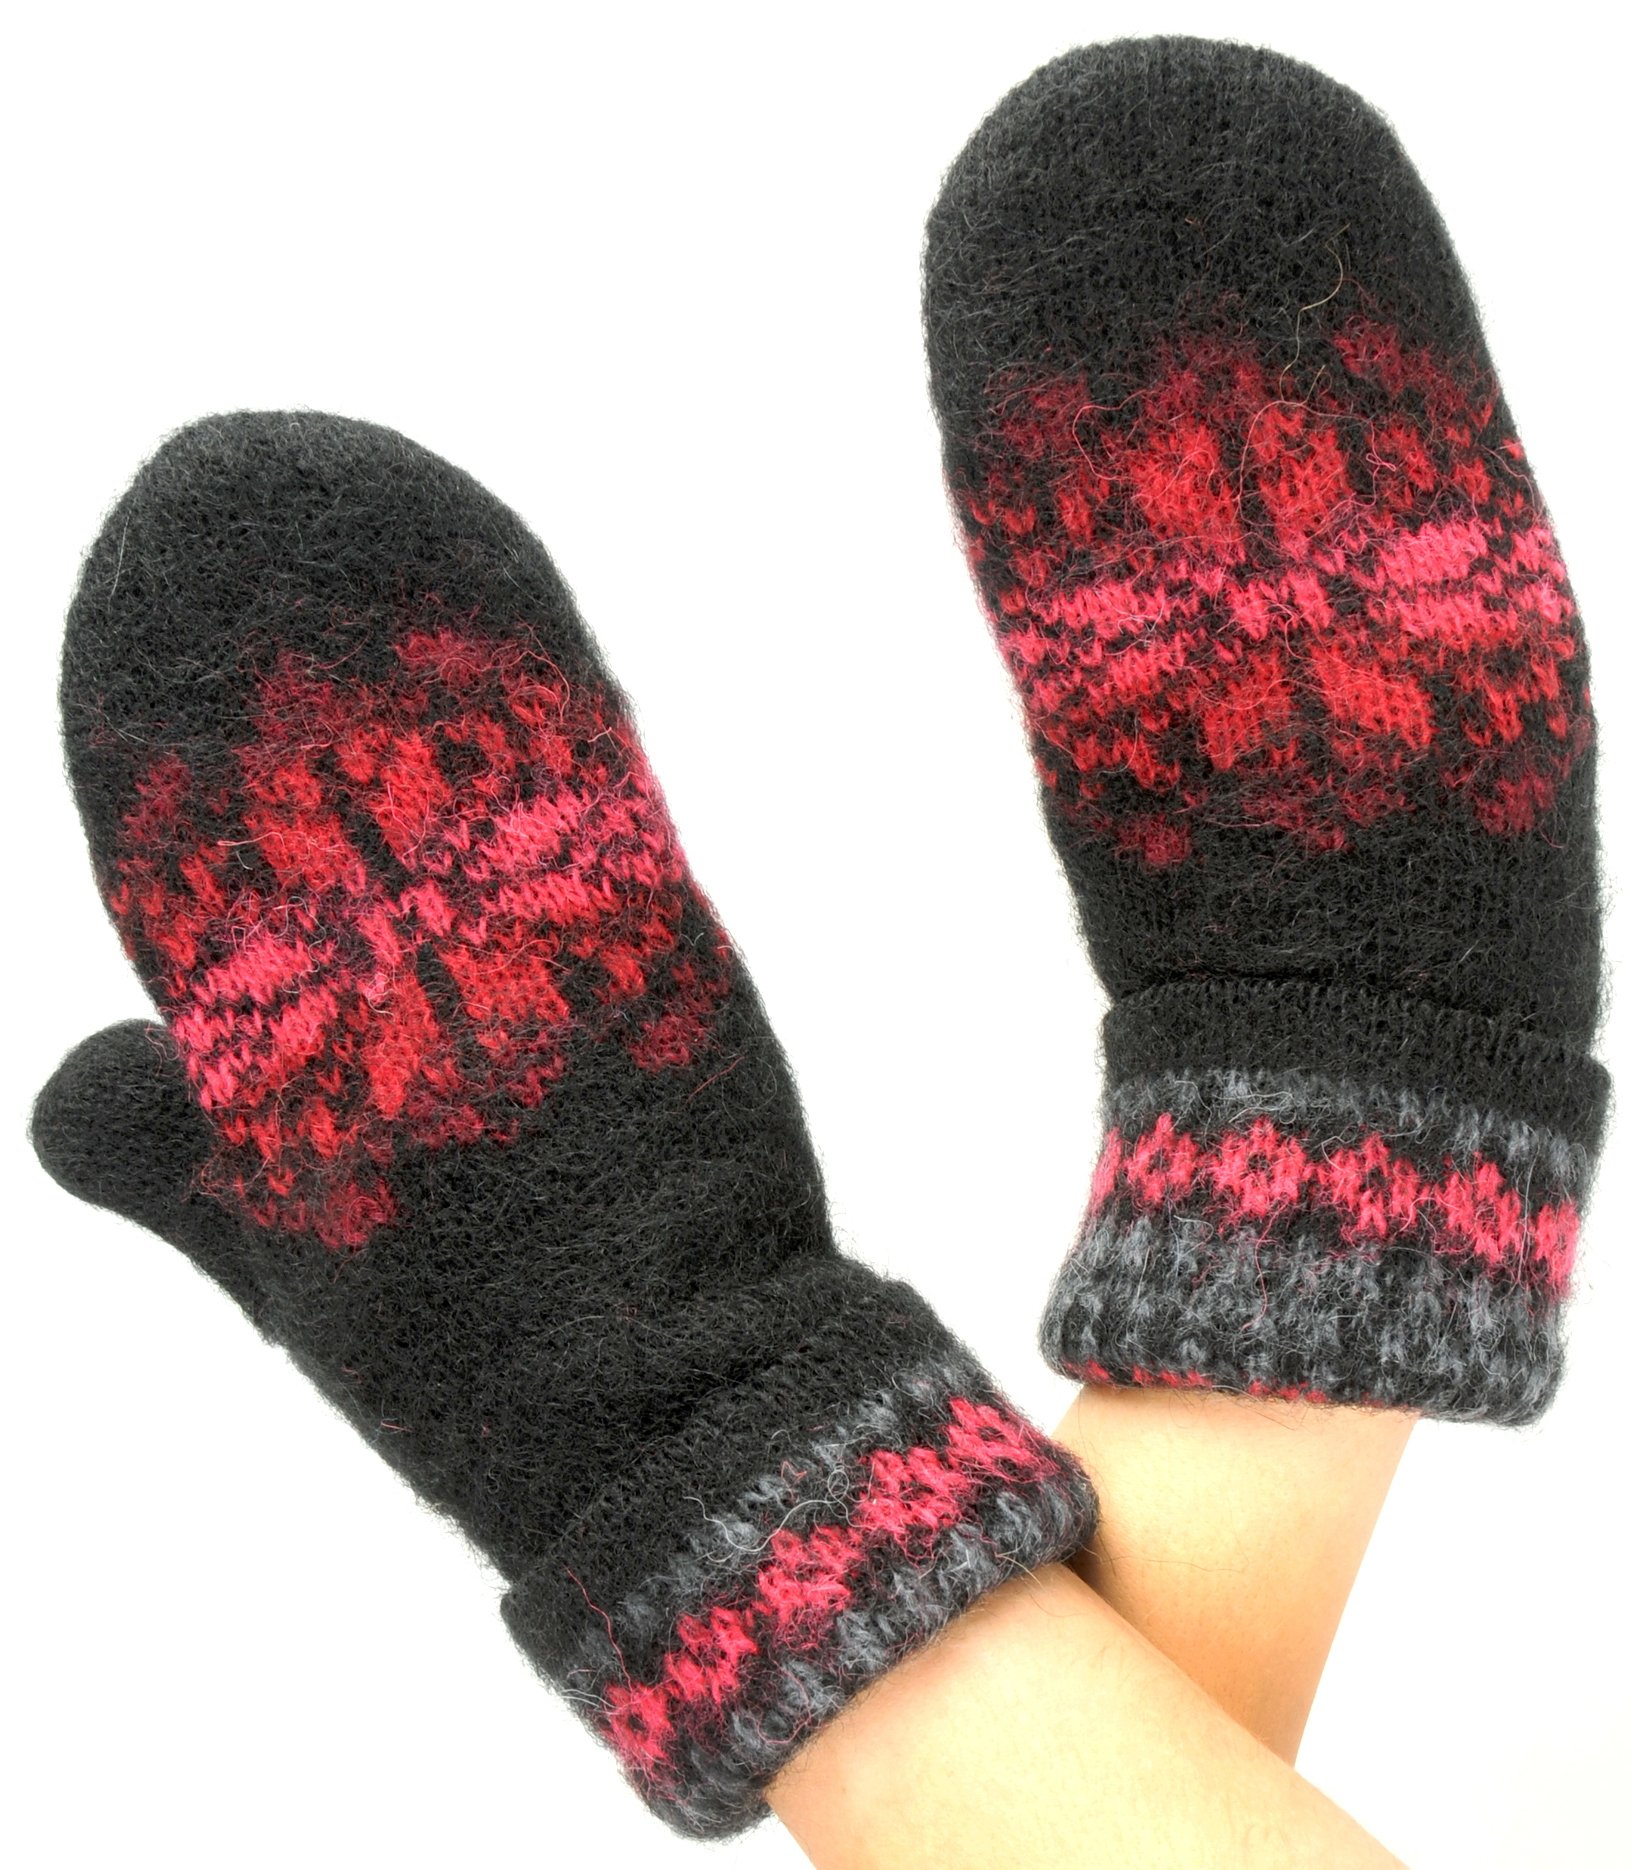 Wool Mittens for Women 100% Icelandic Wool Fleece Lined by Freyja Canada